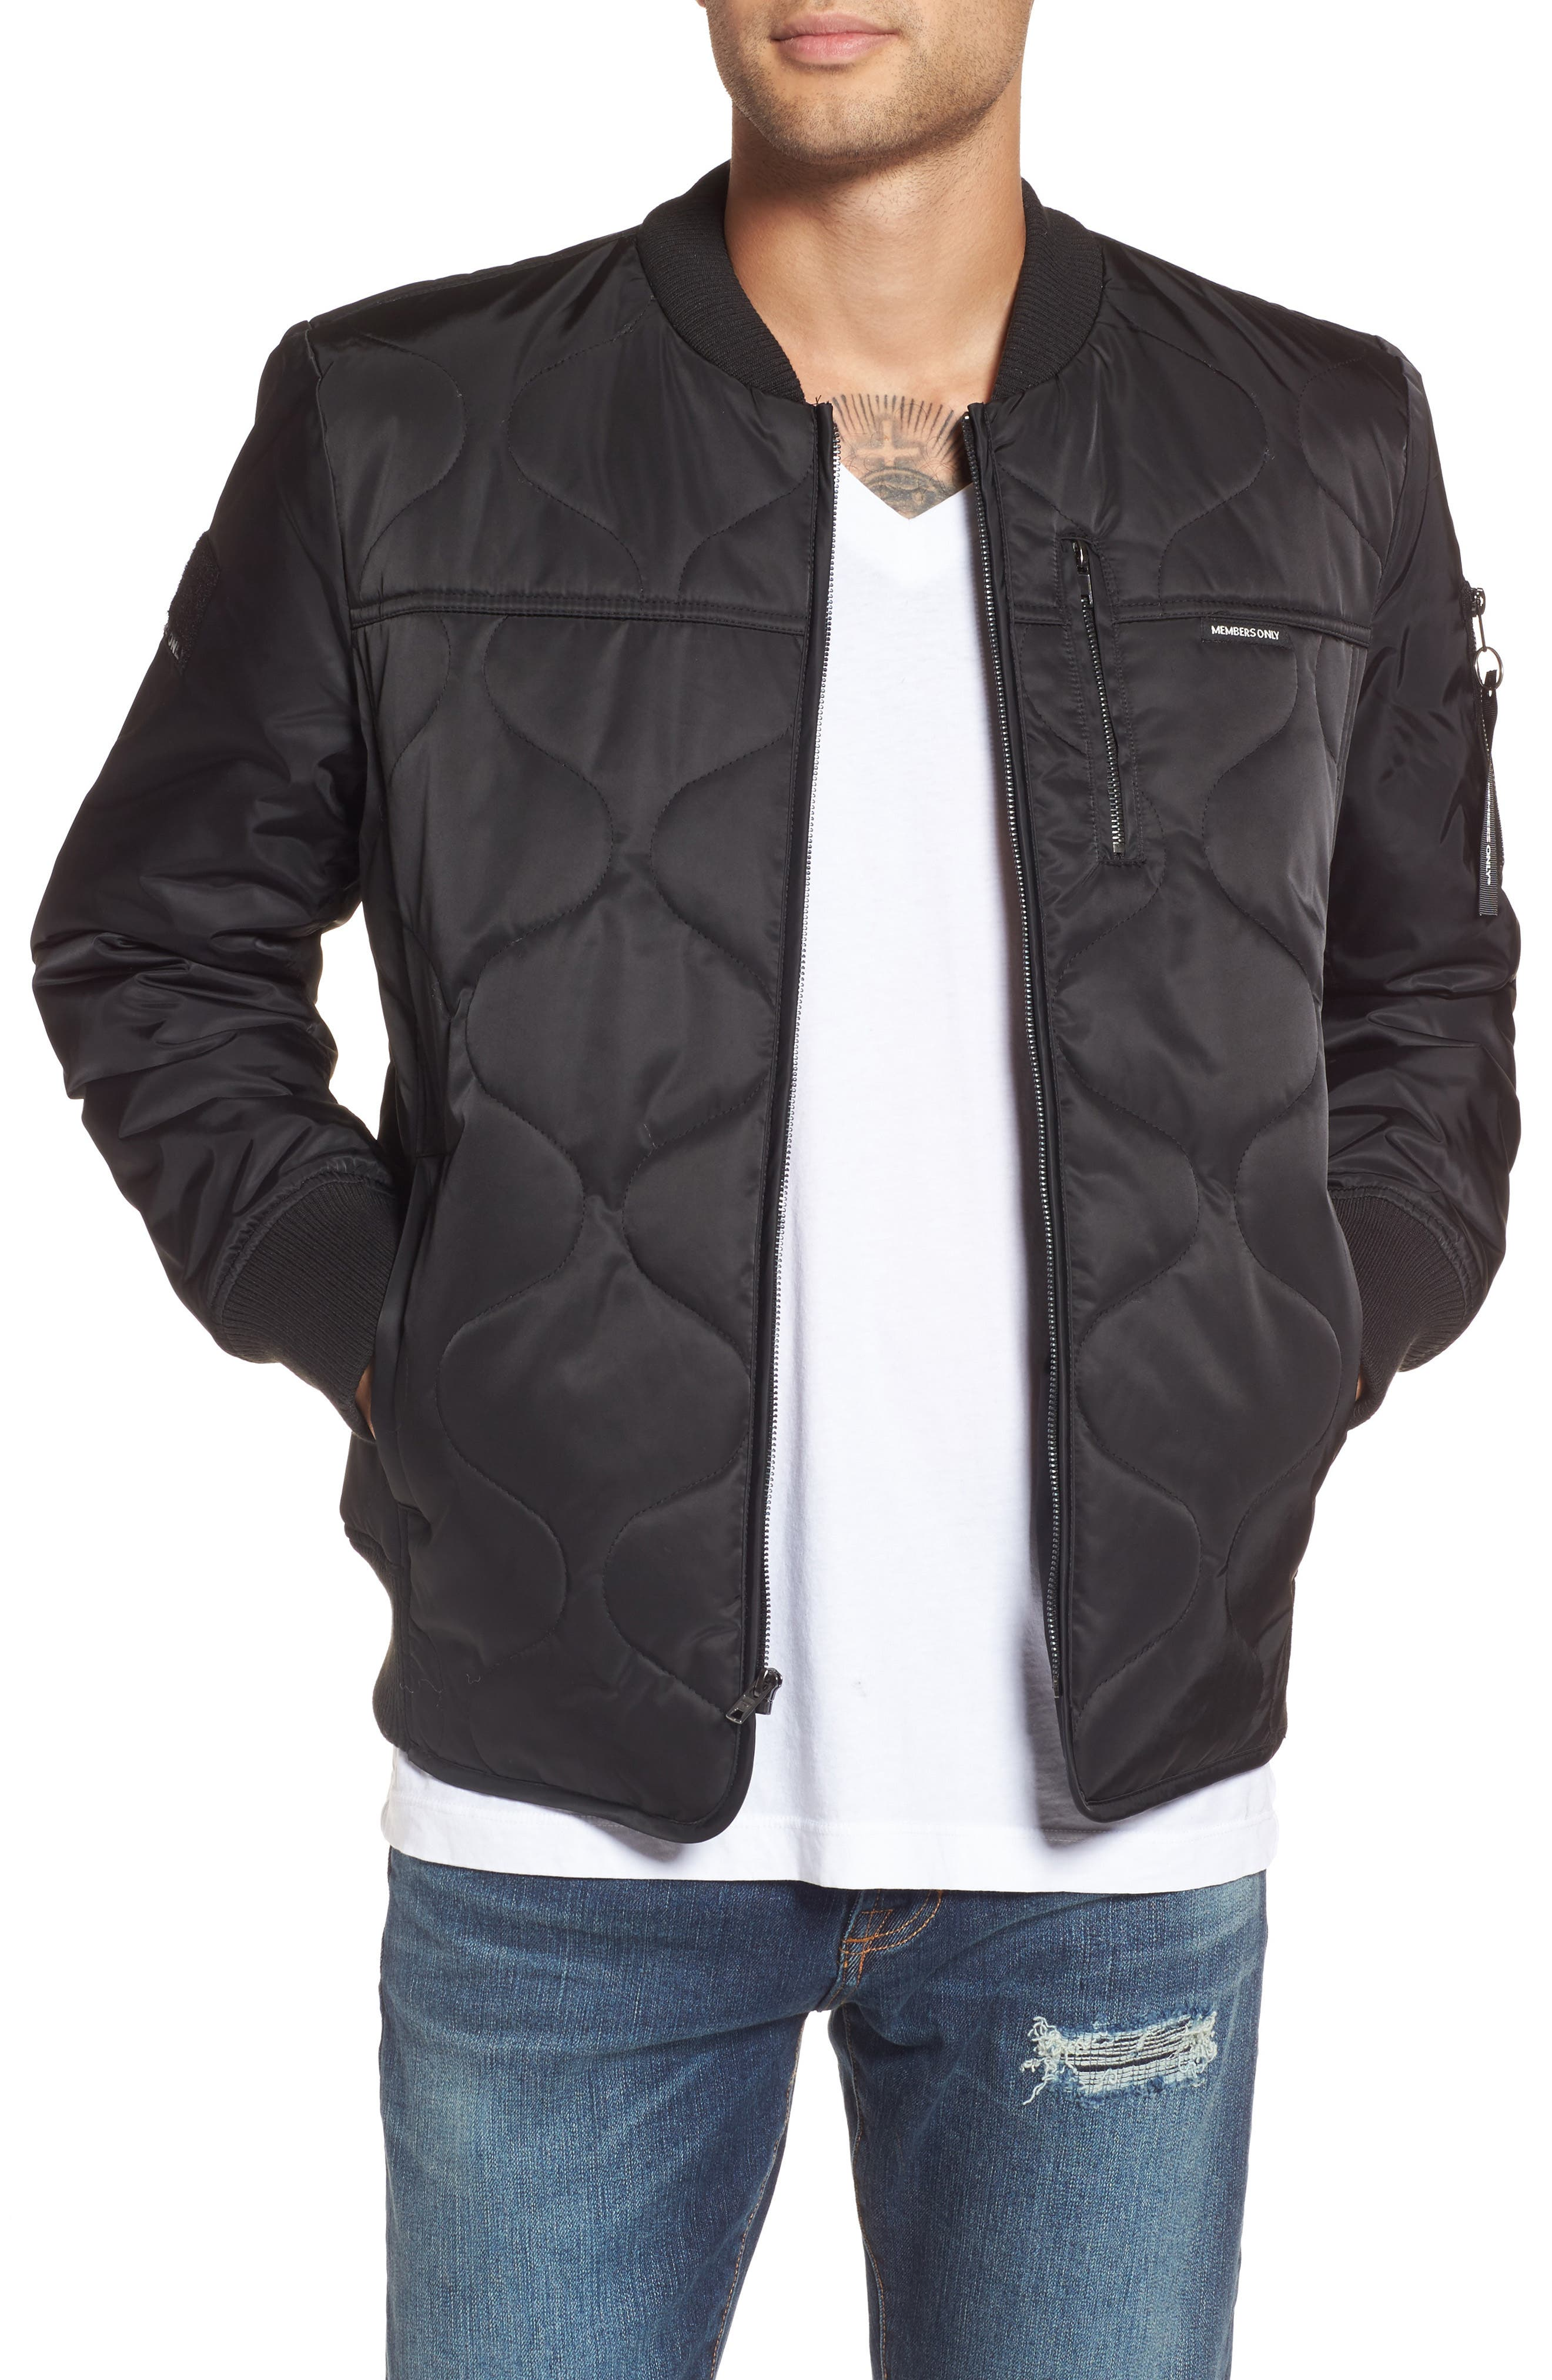 Alternate Image 1 Selected - Members Only Quilted Bomber Jacket